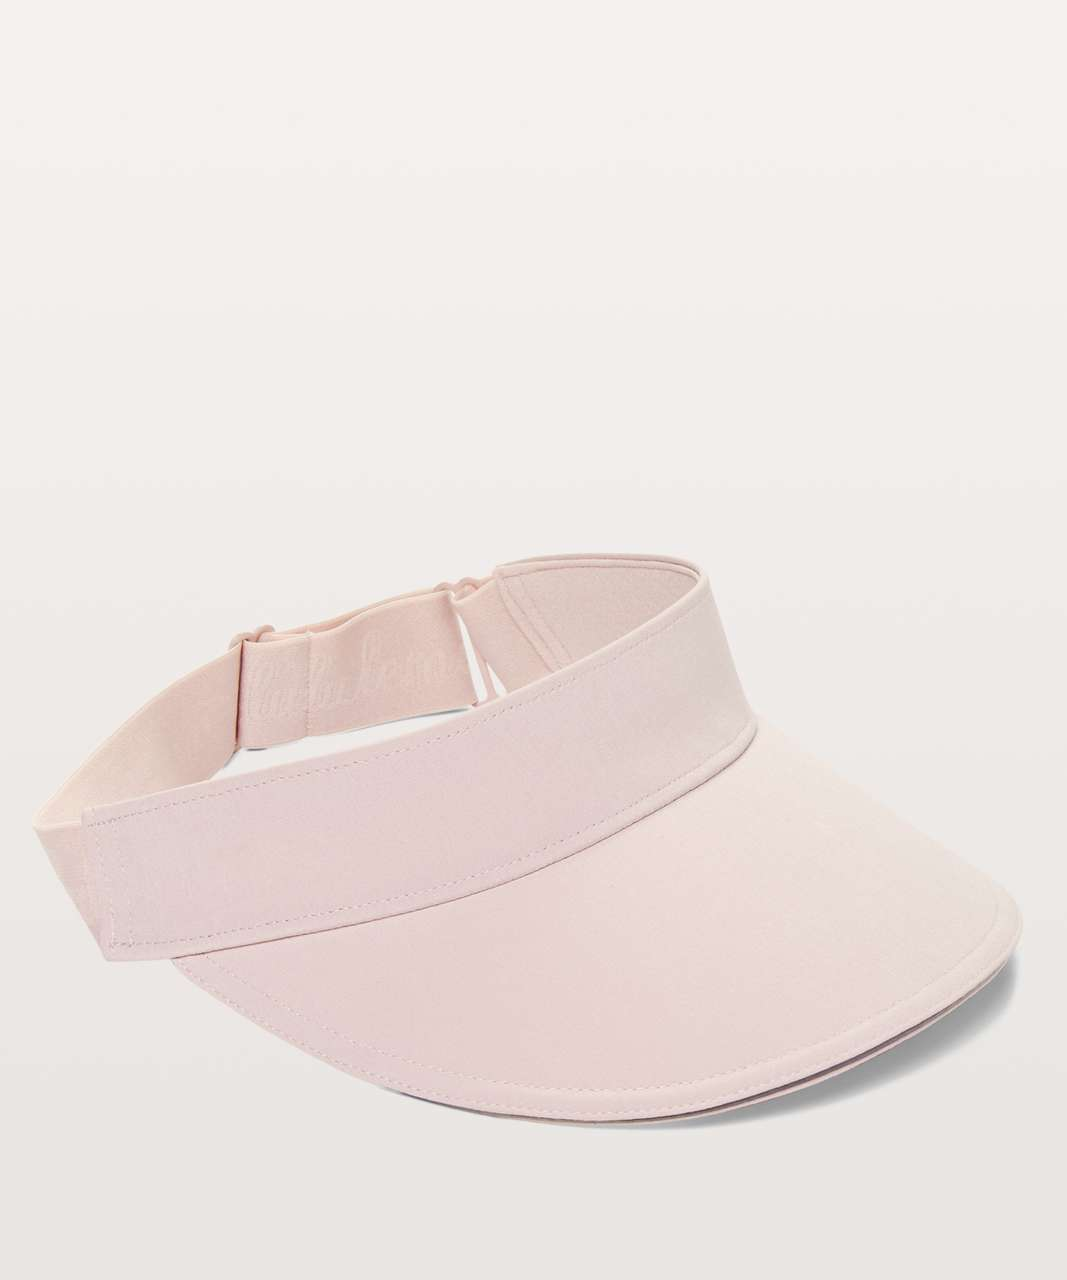 Lululemon Fast Paced Run Visor - Porcelain Pink